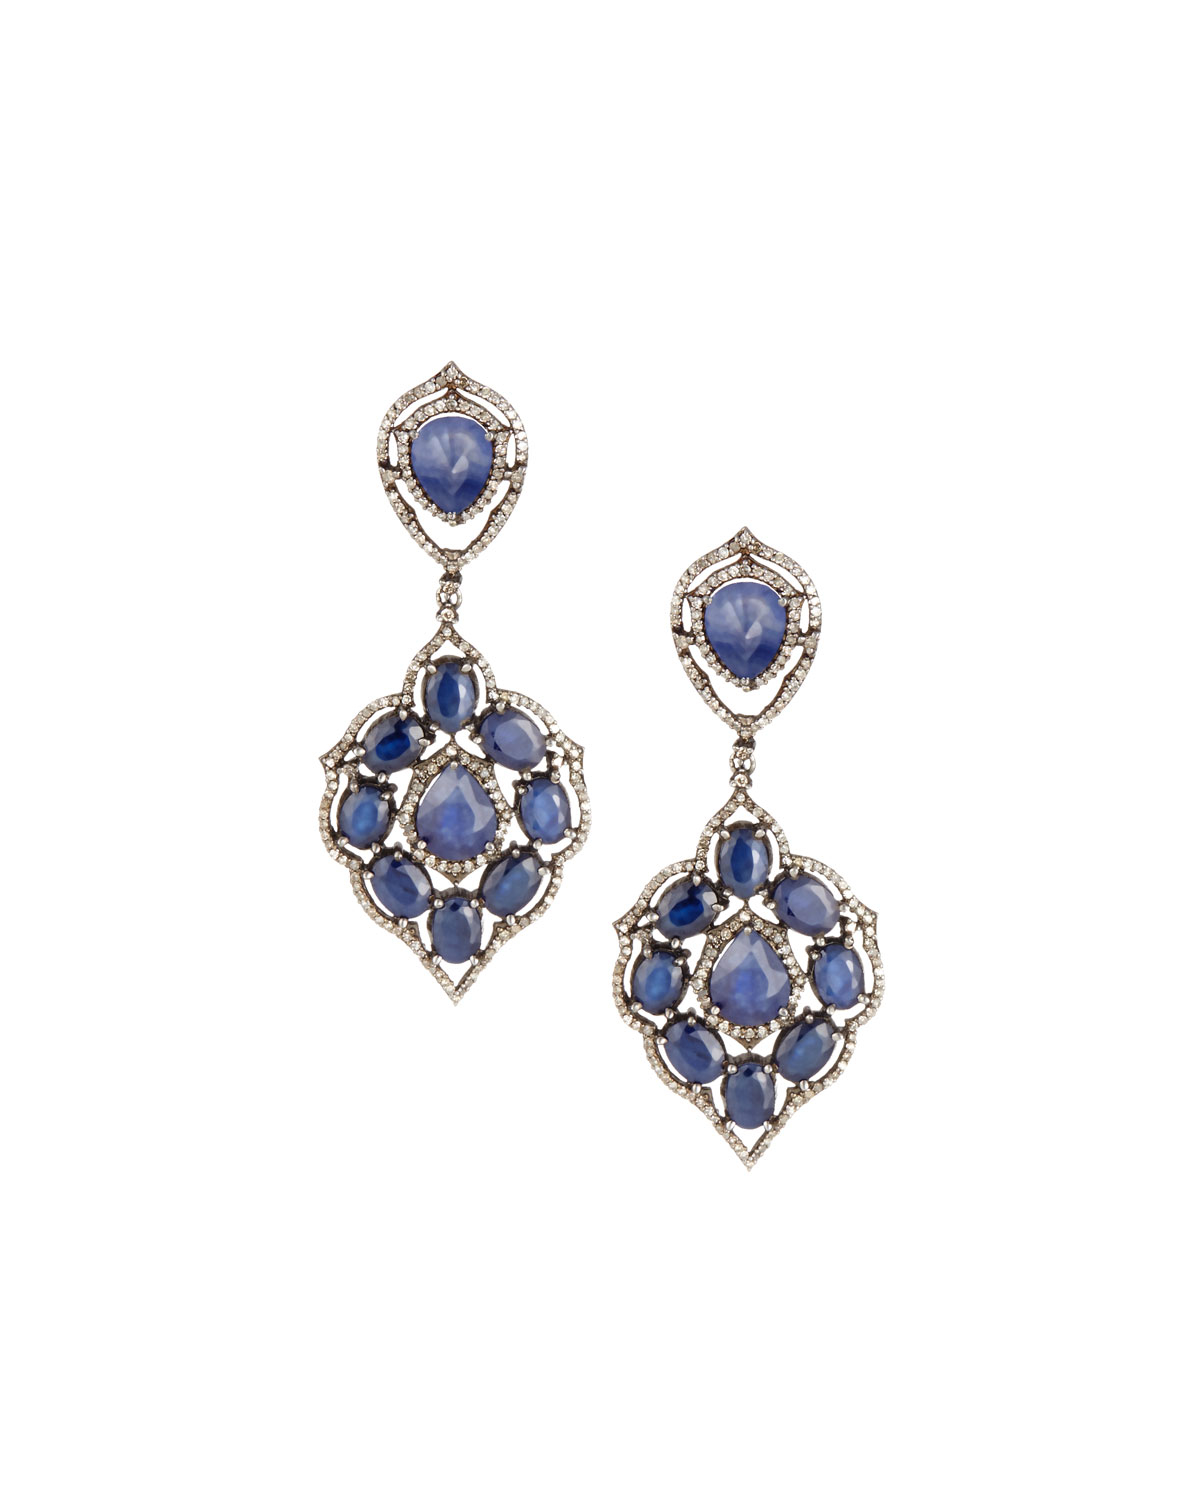 Bavna Diamond & Mixed Sapphire Drop Earrings SVfvaQ3U1